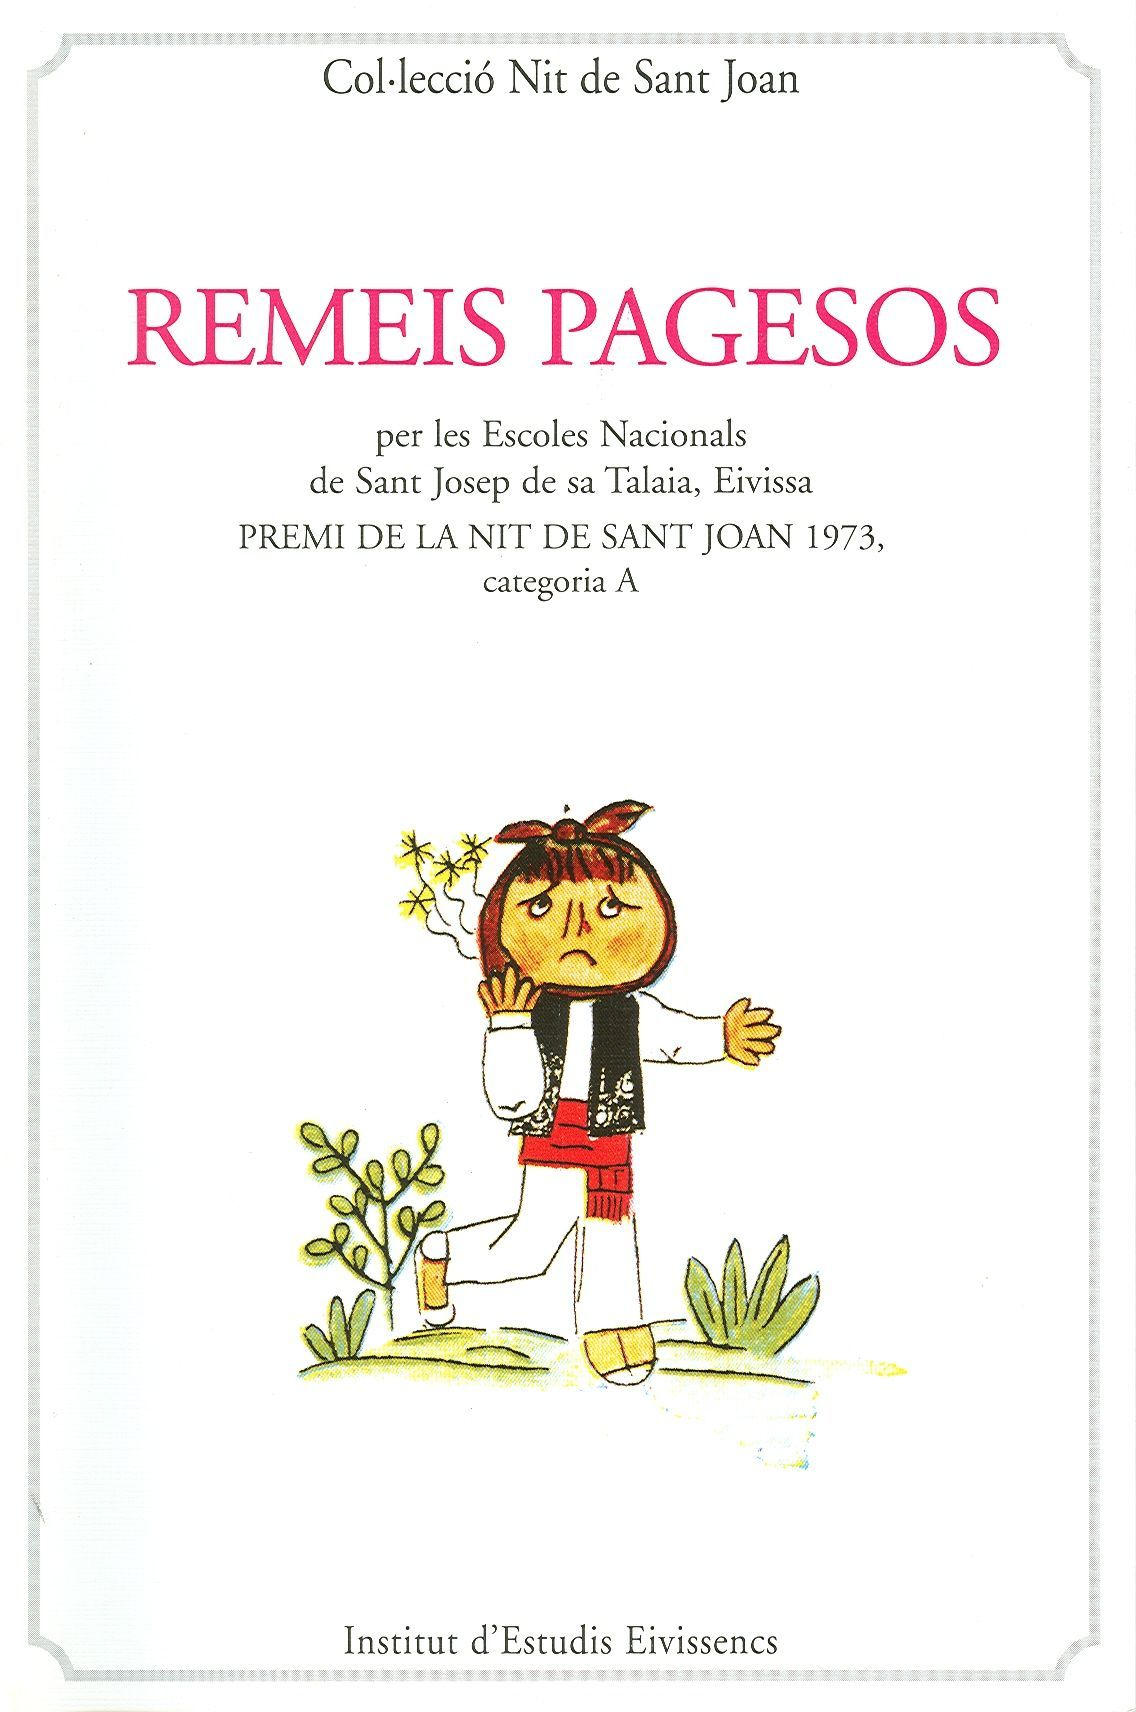 Remeis pagesos